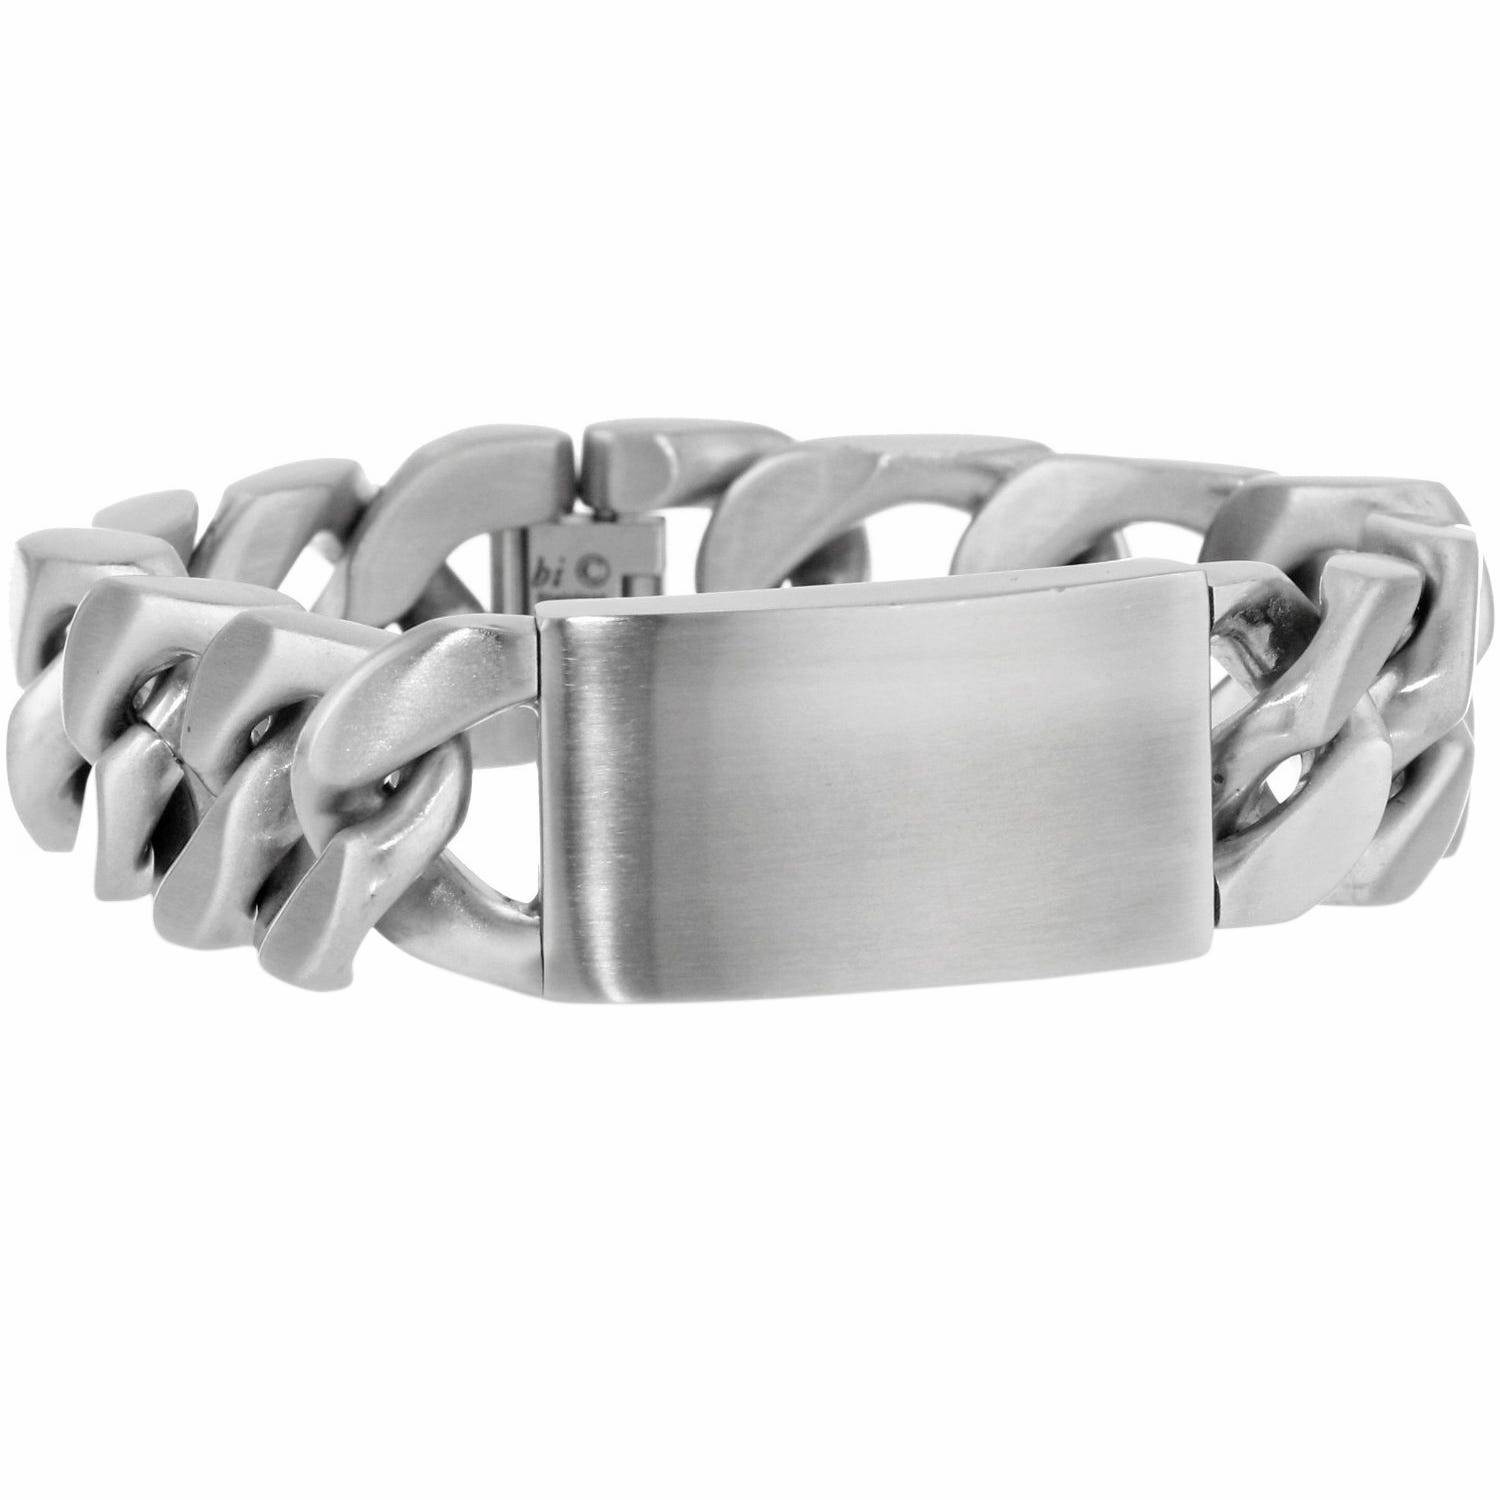 Men's Stainless Steel Chunky ID Chain Link Bracelet